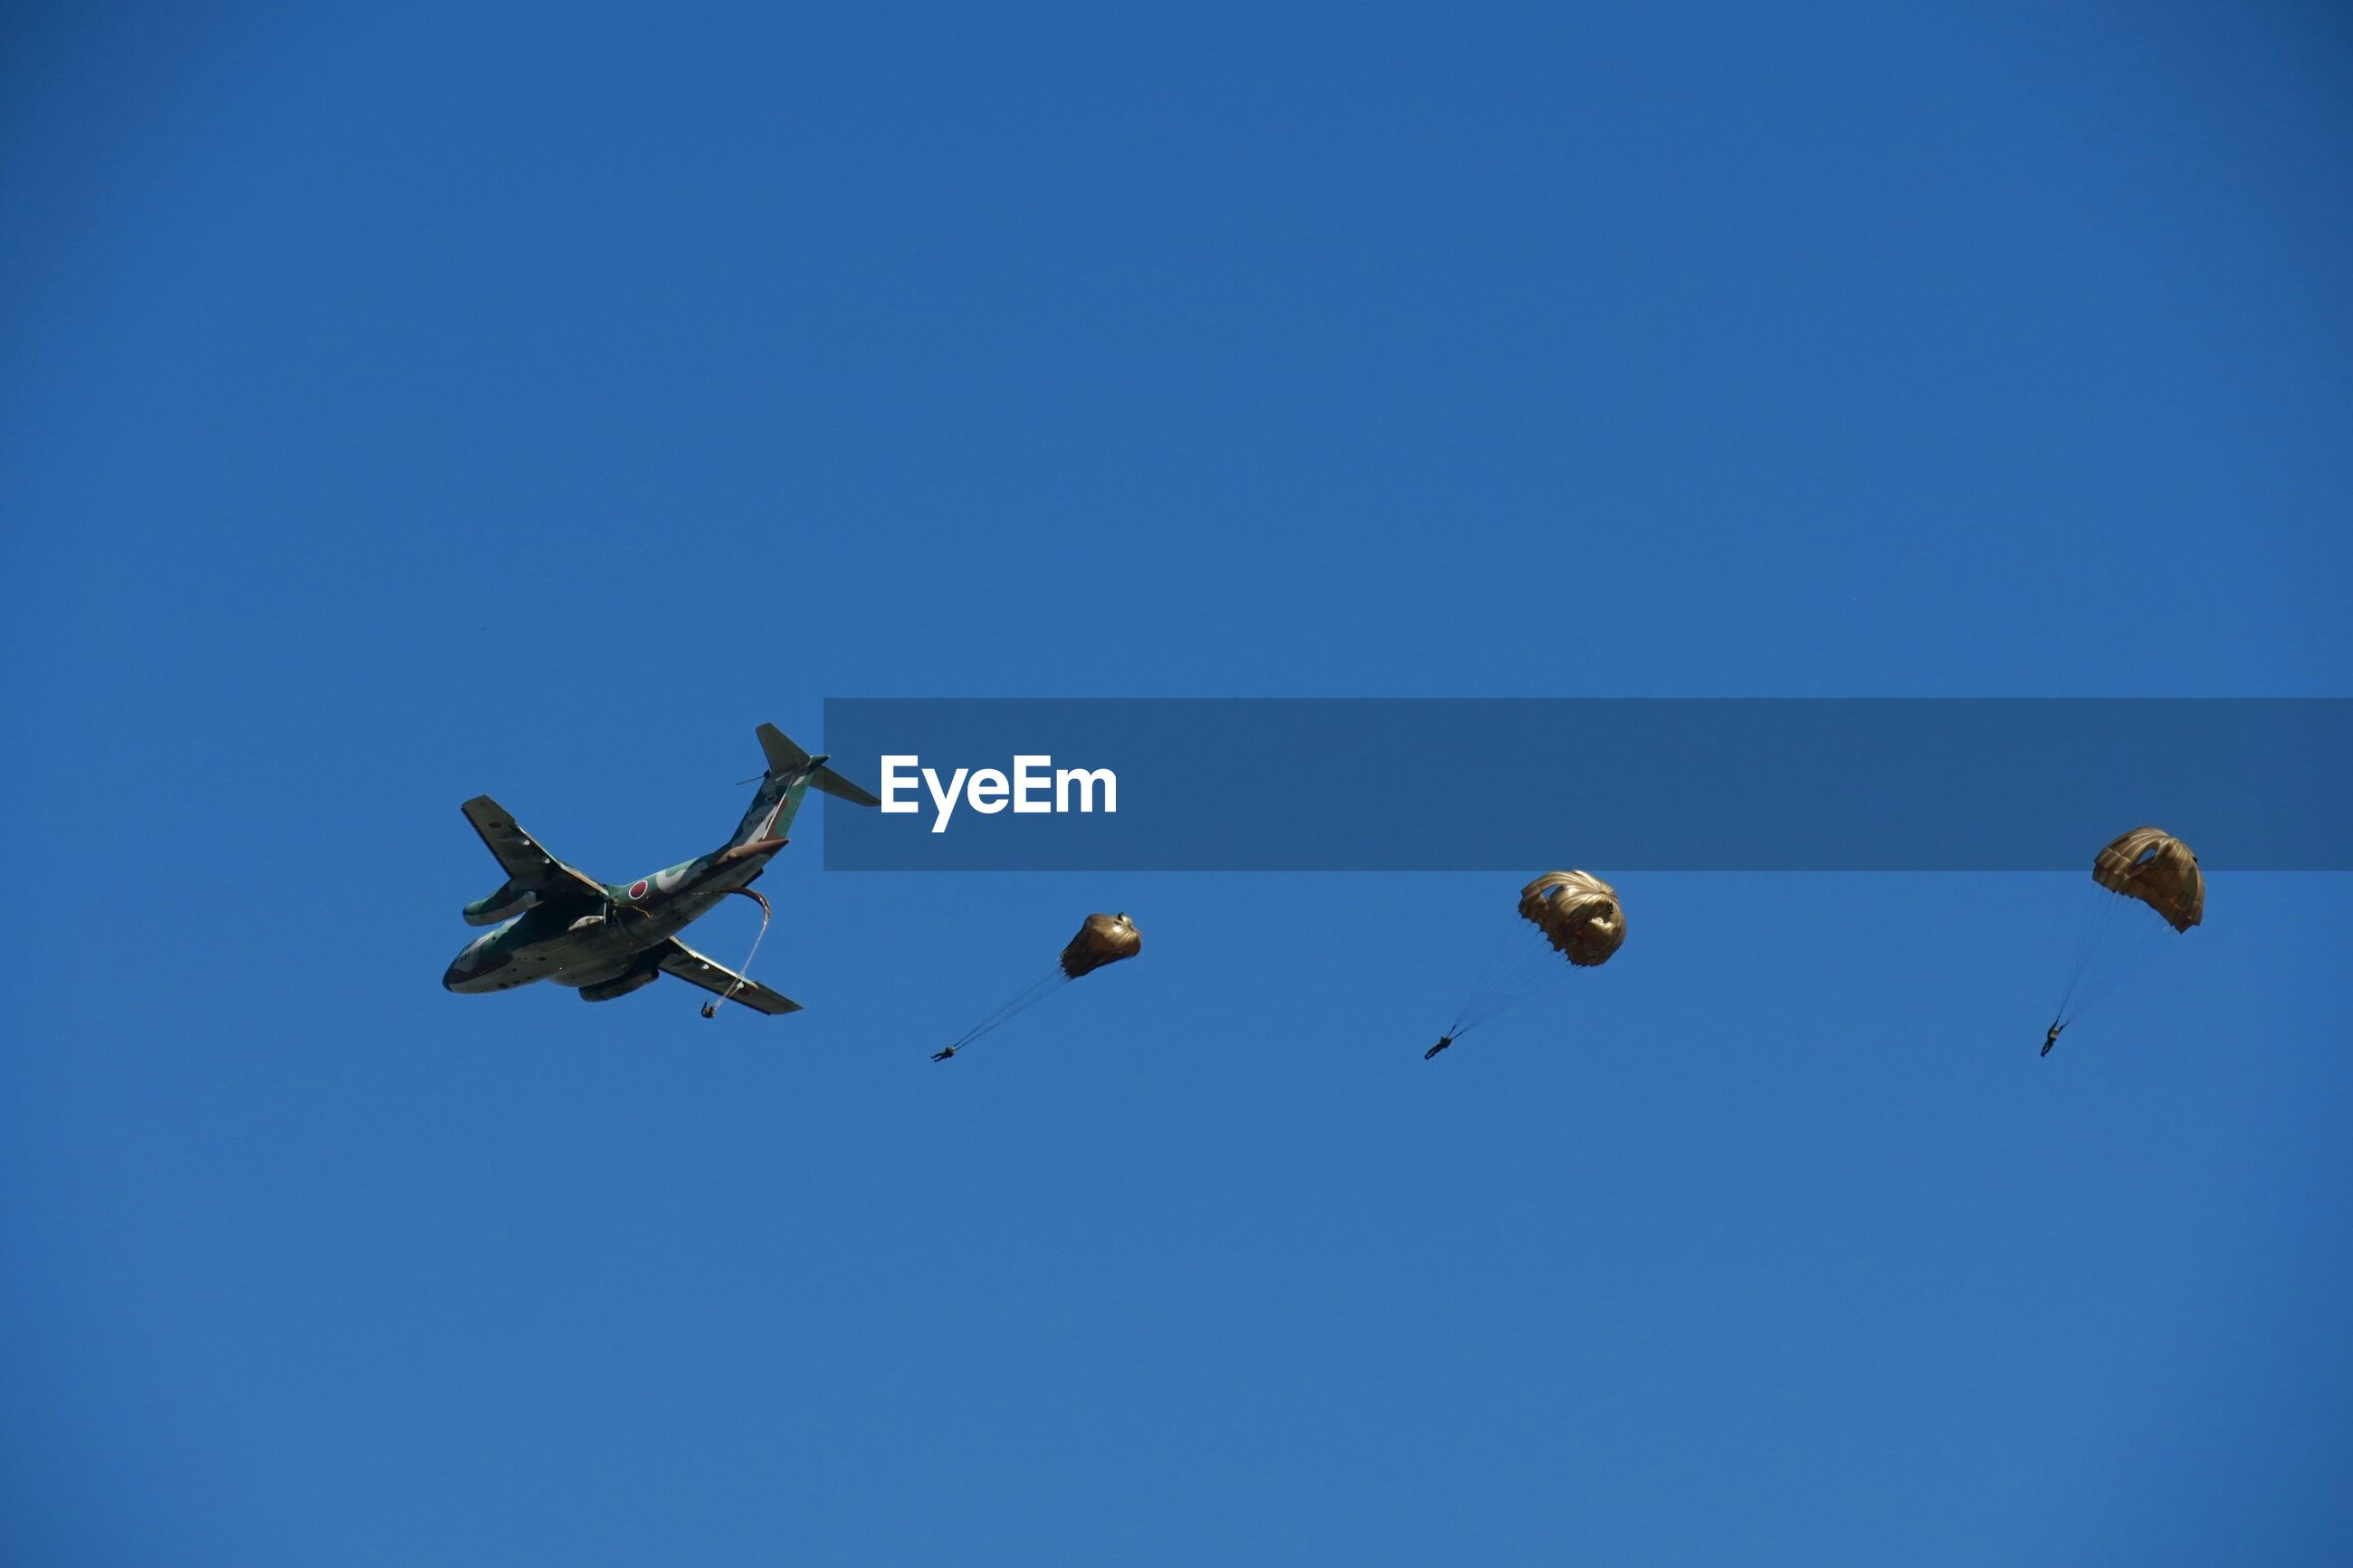 Low angle view of airplane and parachutes against clear blue sky